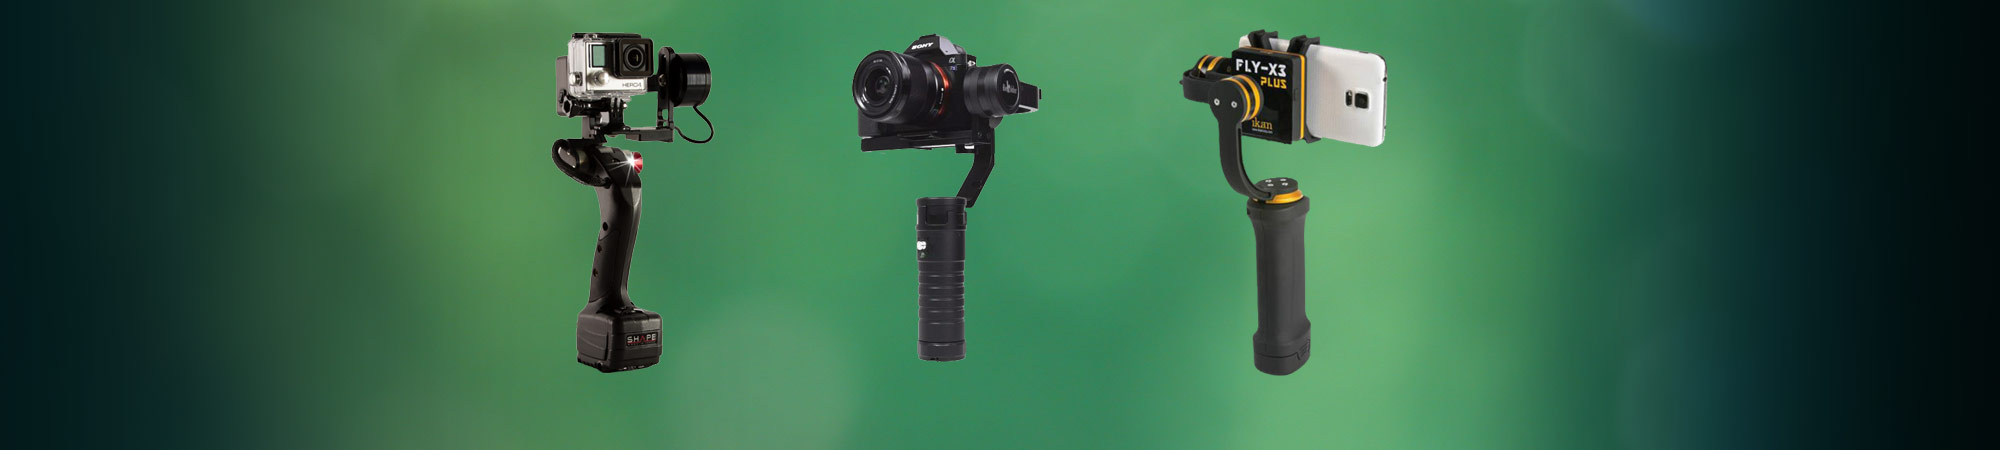 Get Your Gimbal On